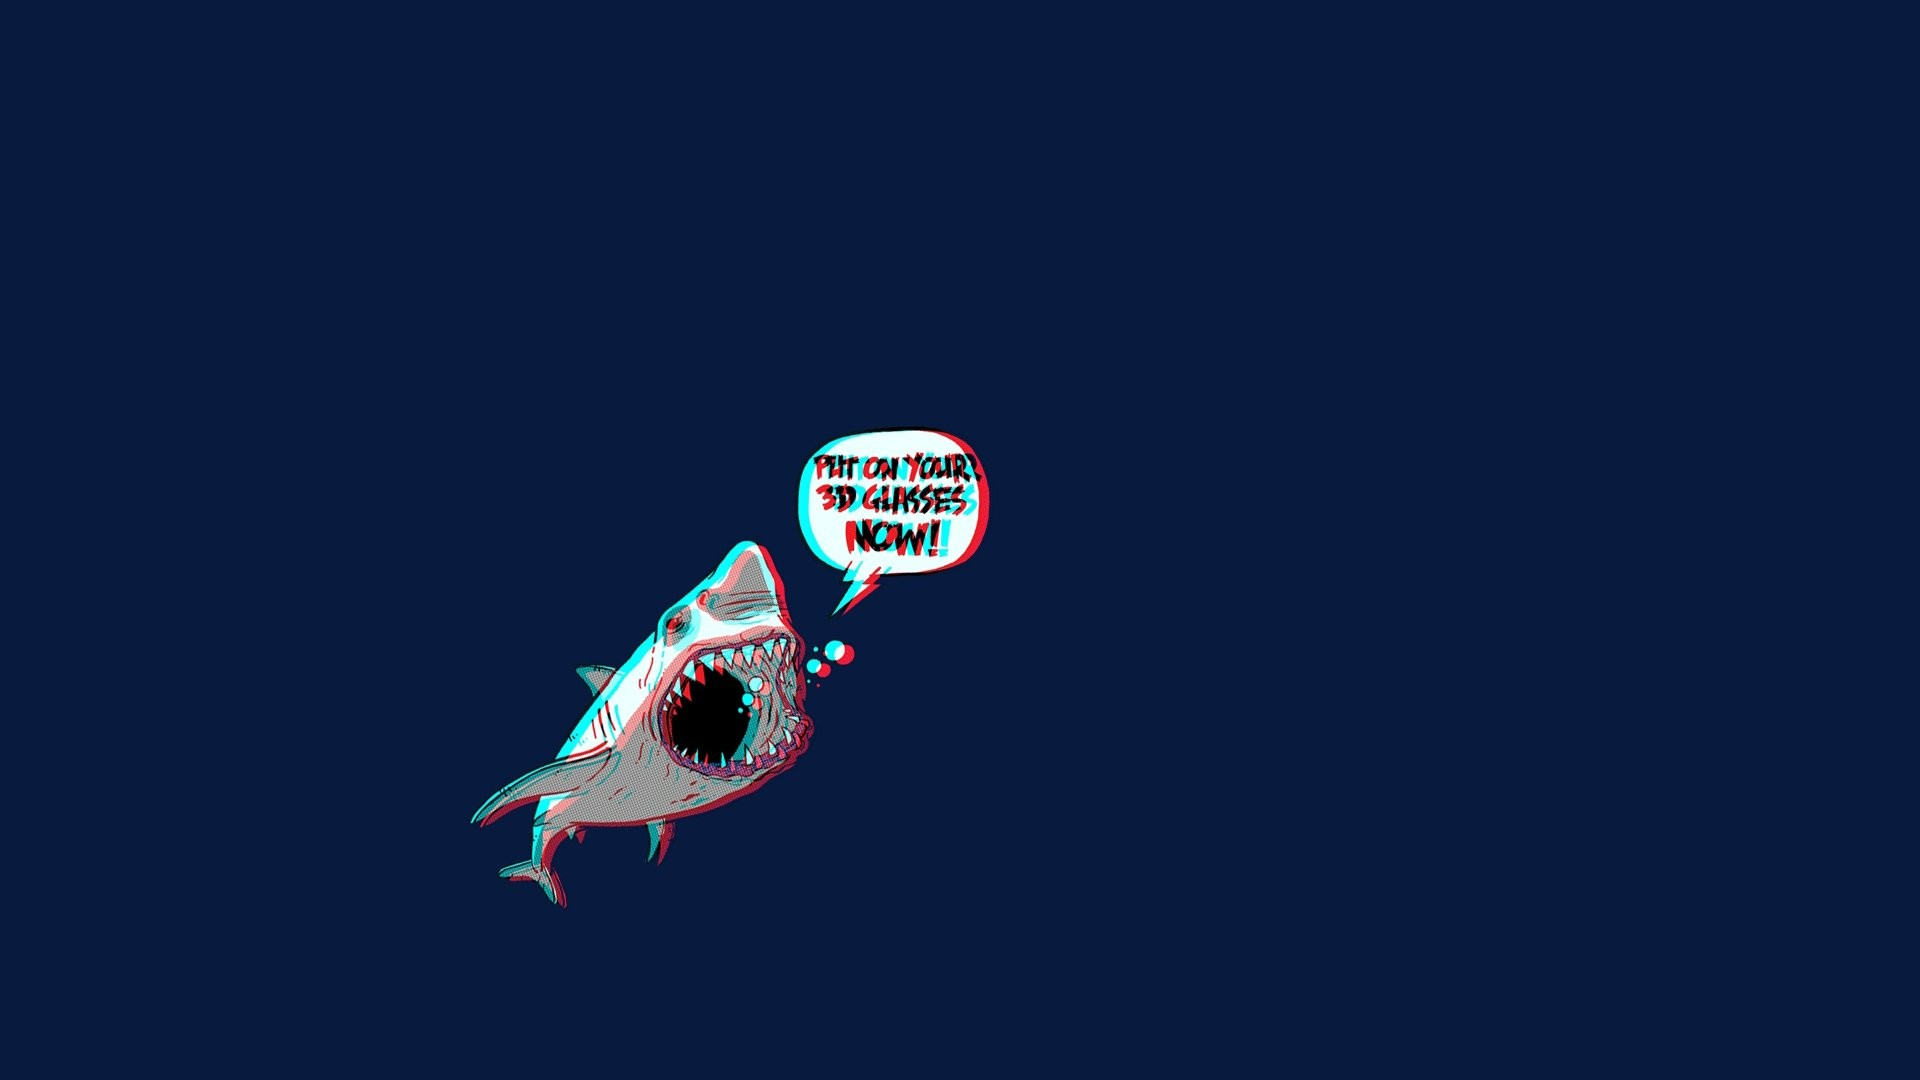 1920x1080 Artistic - Psychedelic Shark 3D Trippy Wallpaper